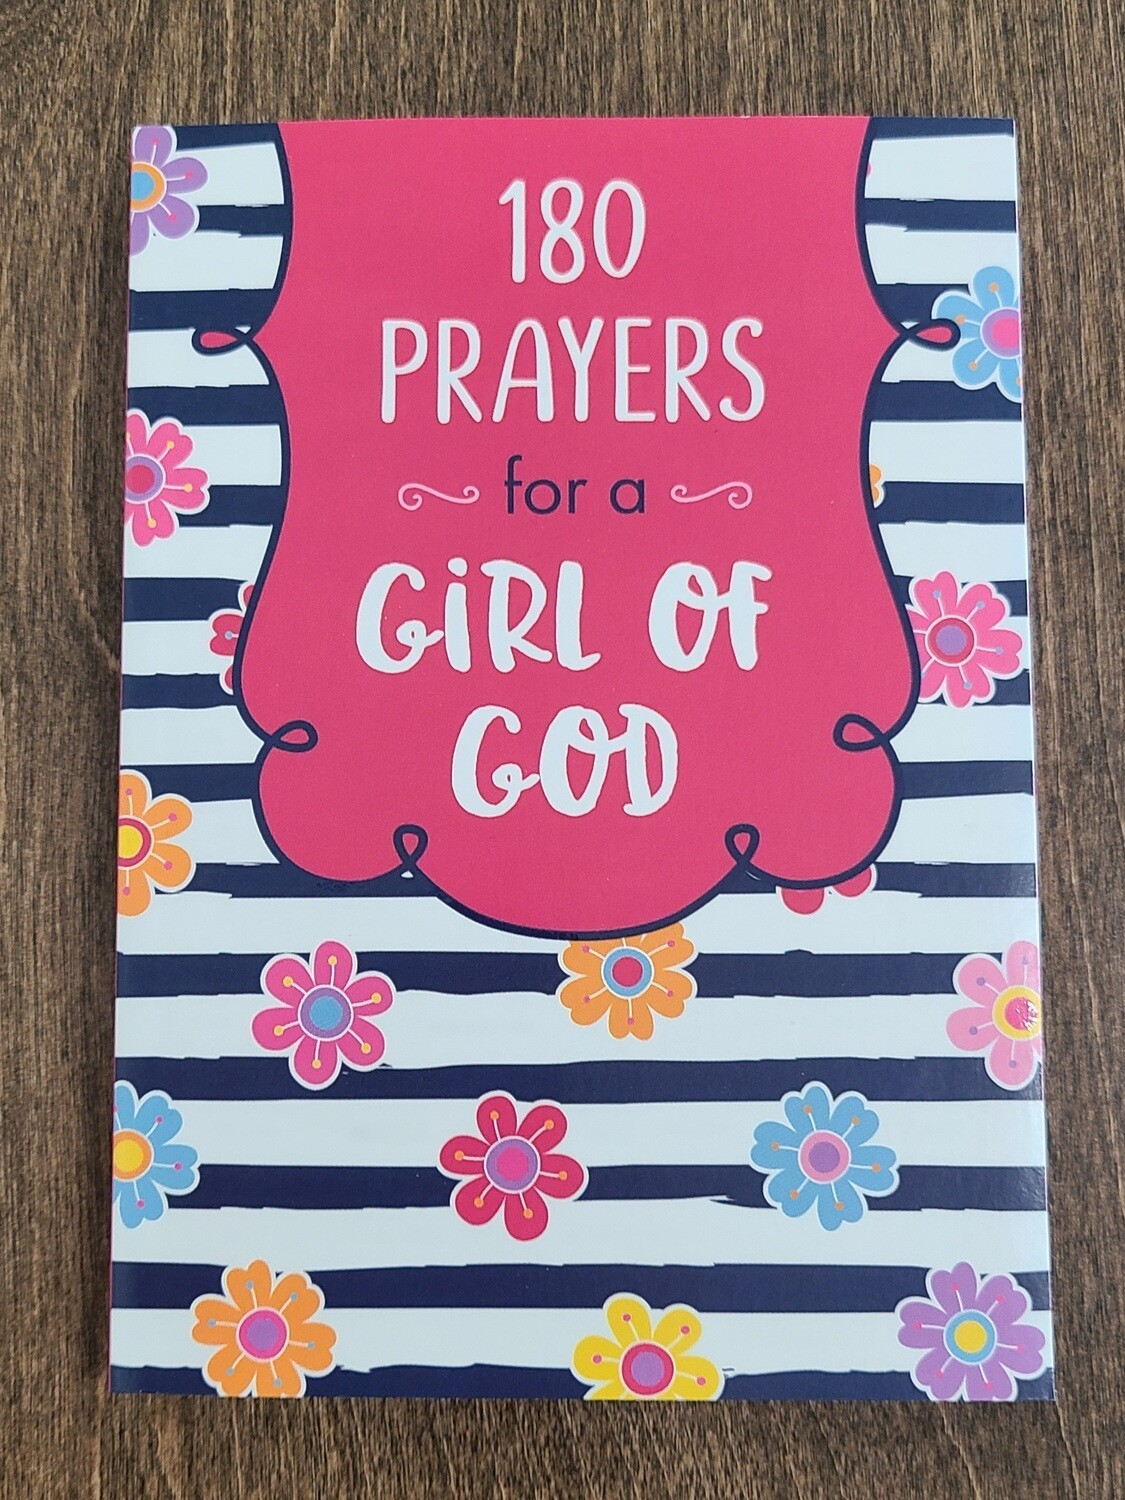 180 Prayers for a Girl of God by JoAnne Simmons